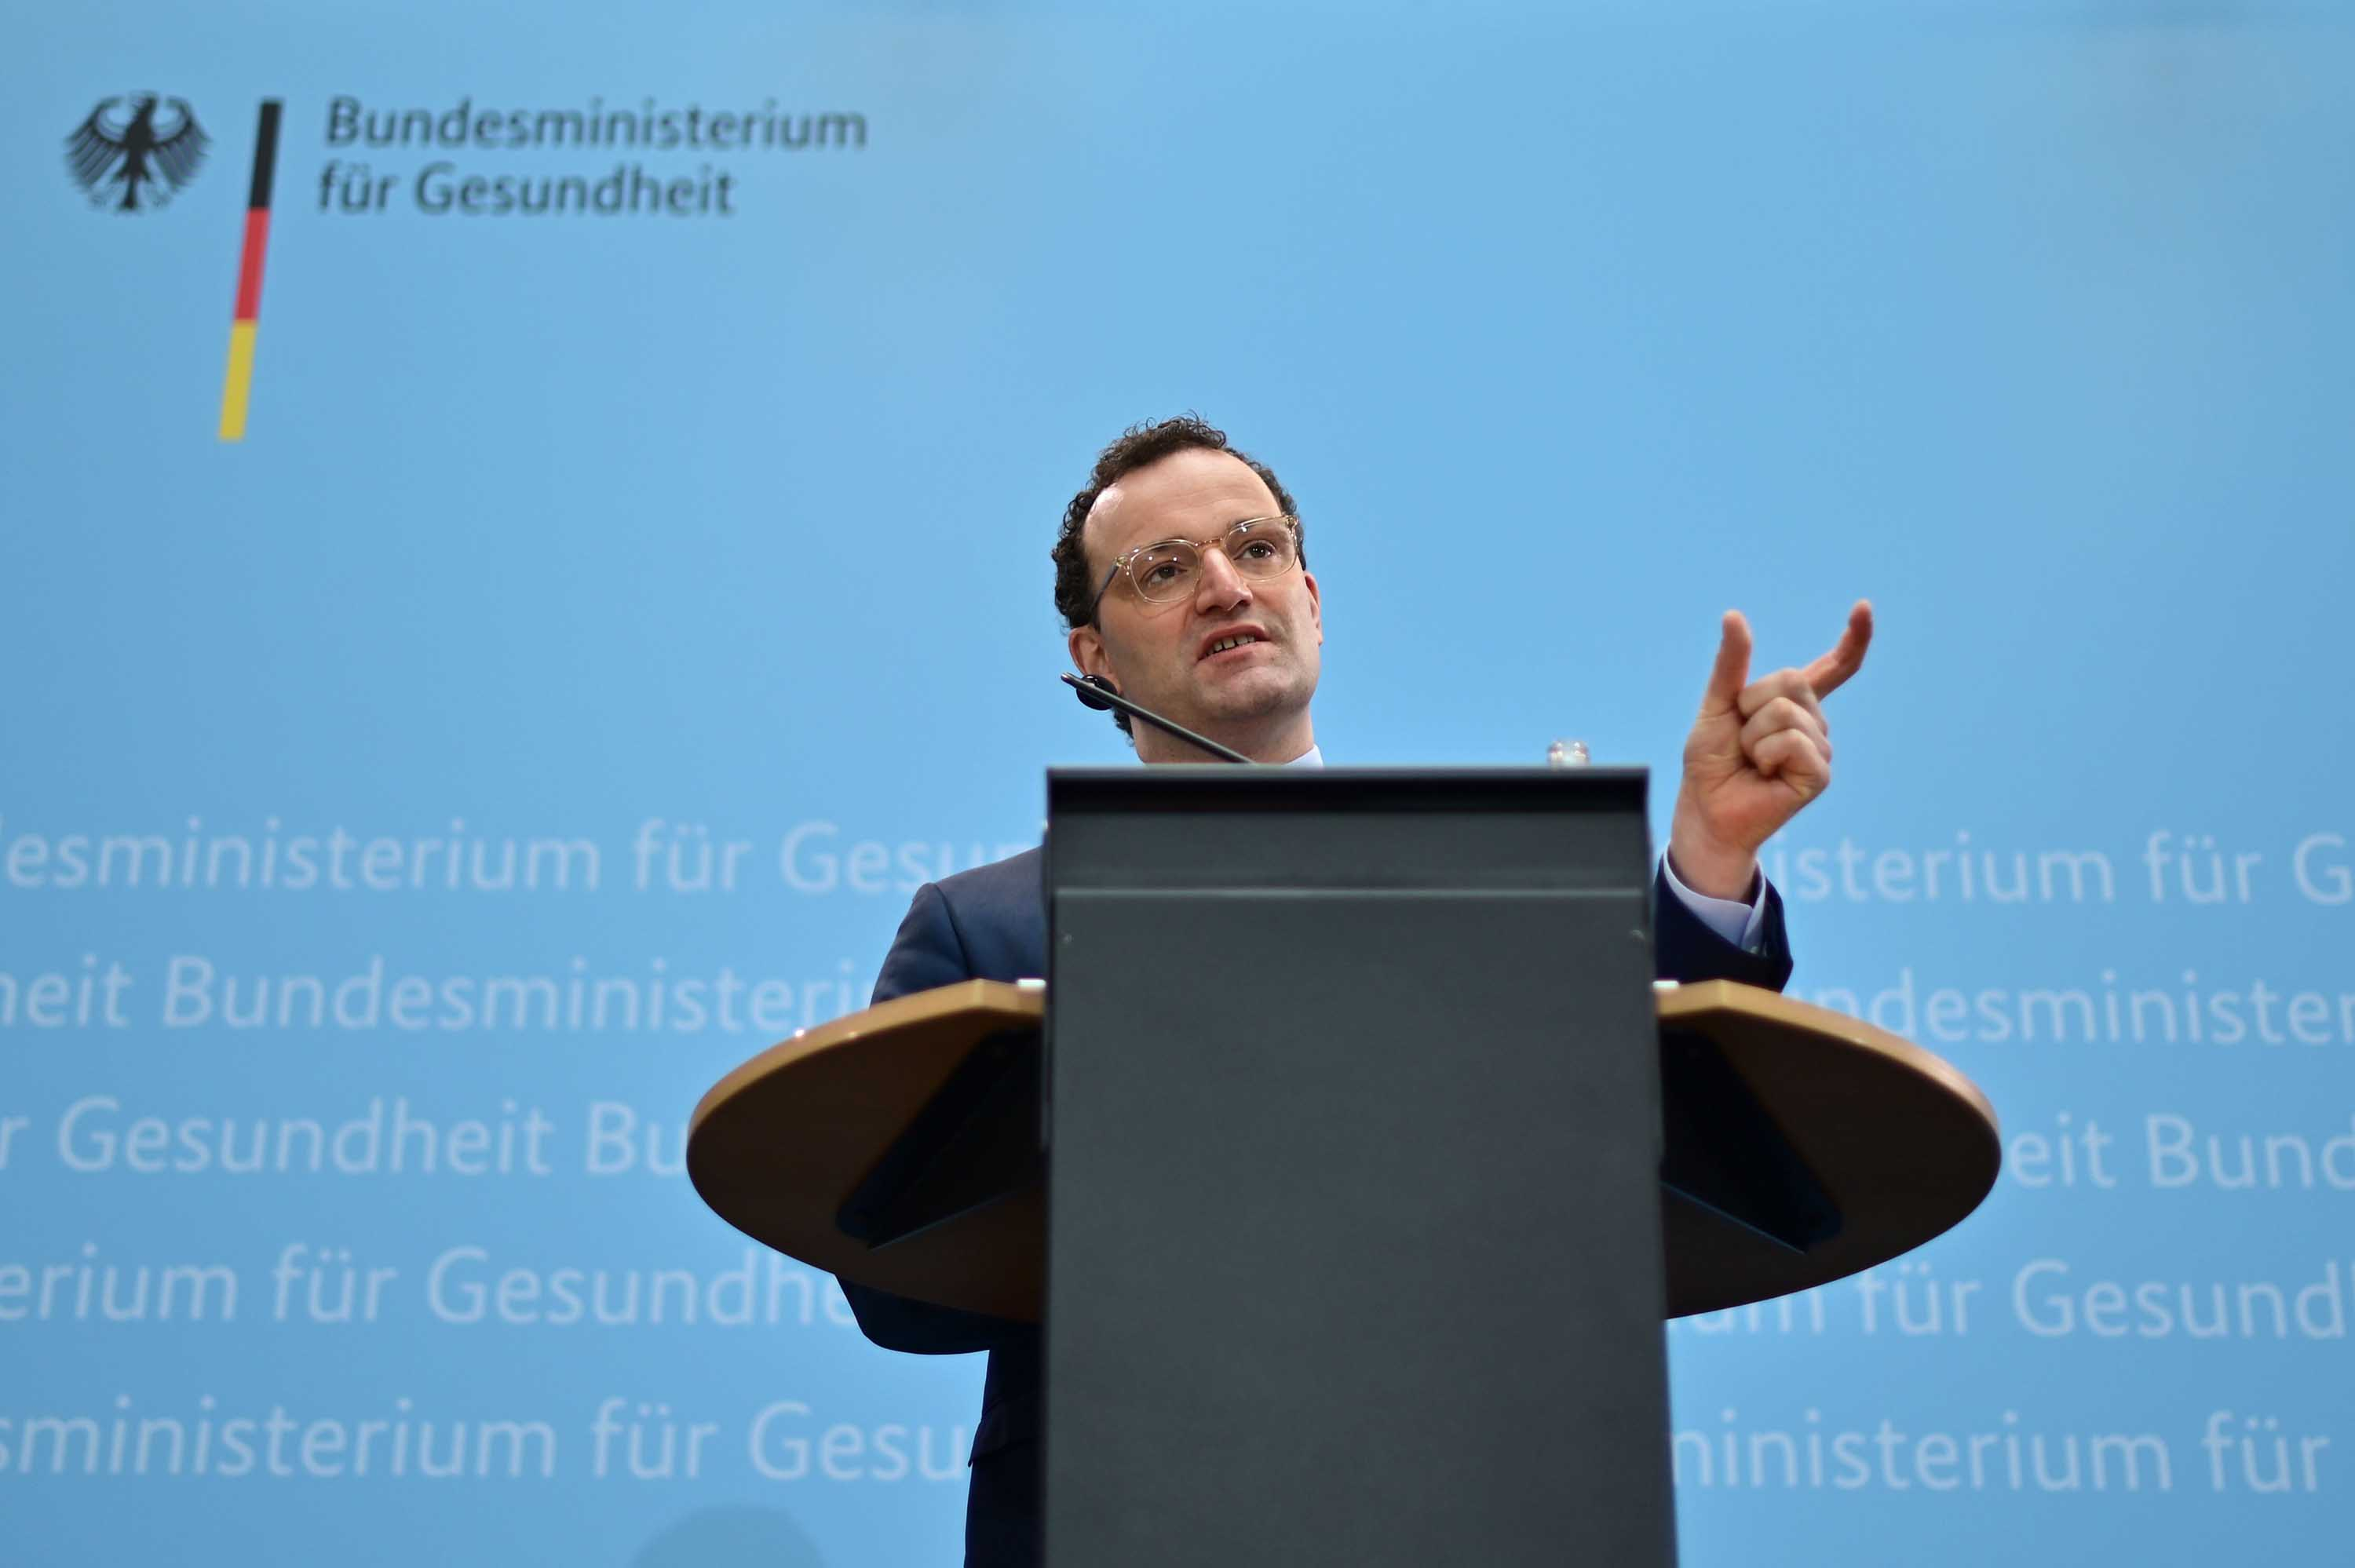 German Health Minister Jens Spahn addresses a press conference on coronavirus mutations and rapid tests in Berlin, Germany, on February 17.